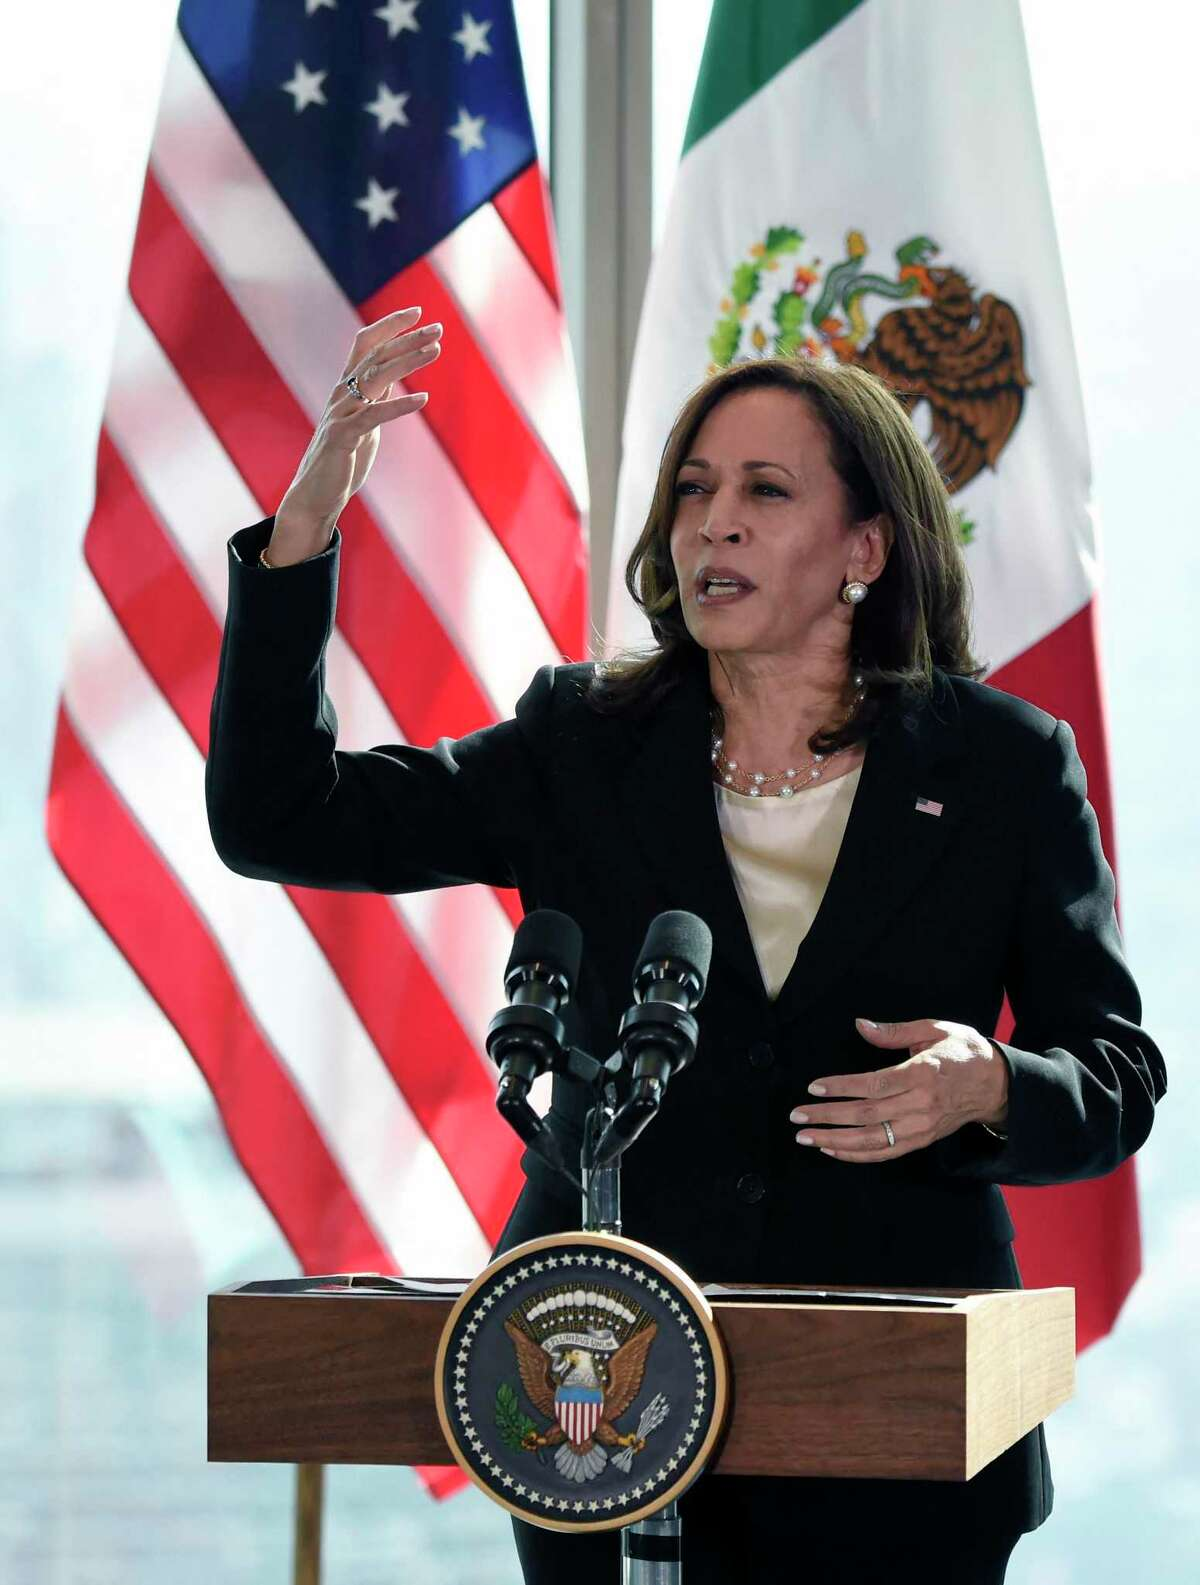 Vice President Kamala Harris has been criticized for her remarks in Central America and for not visiting the U.S.-Mexico border. A reader suggests some compassion.